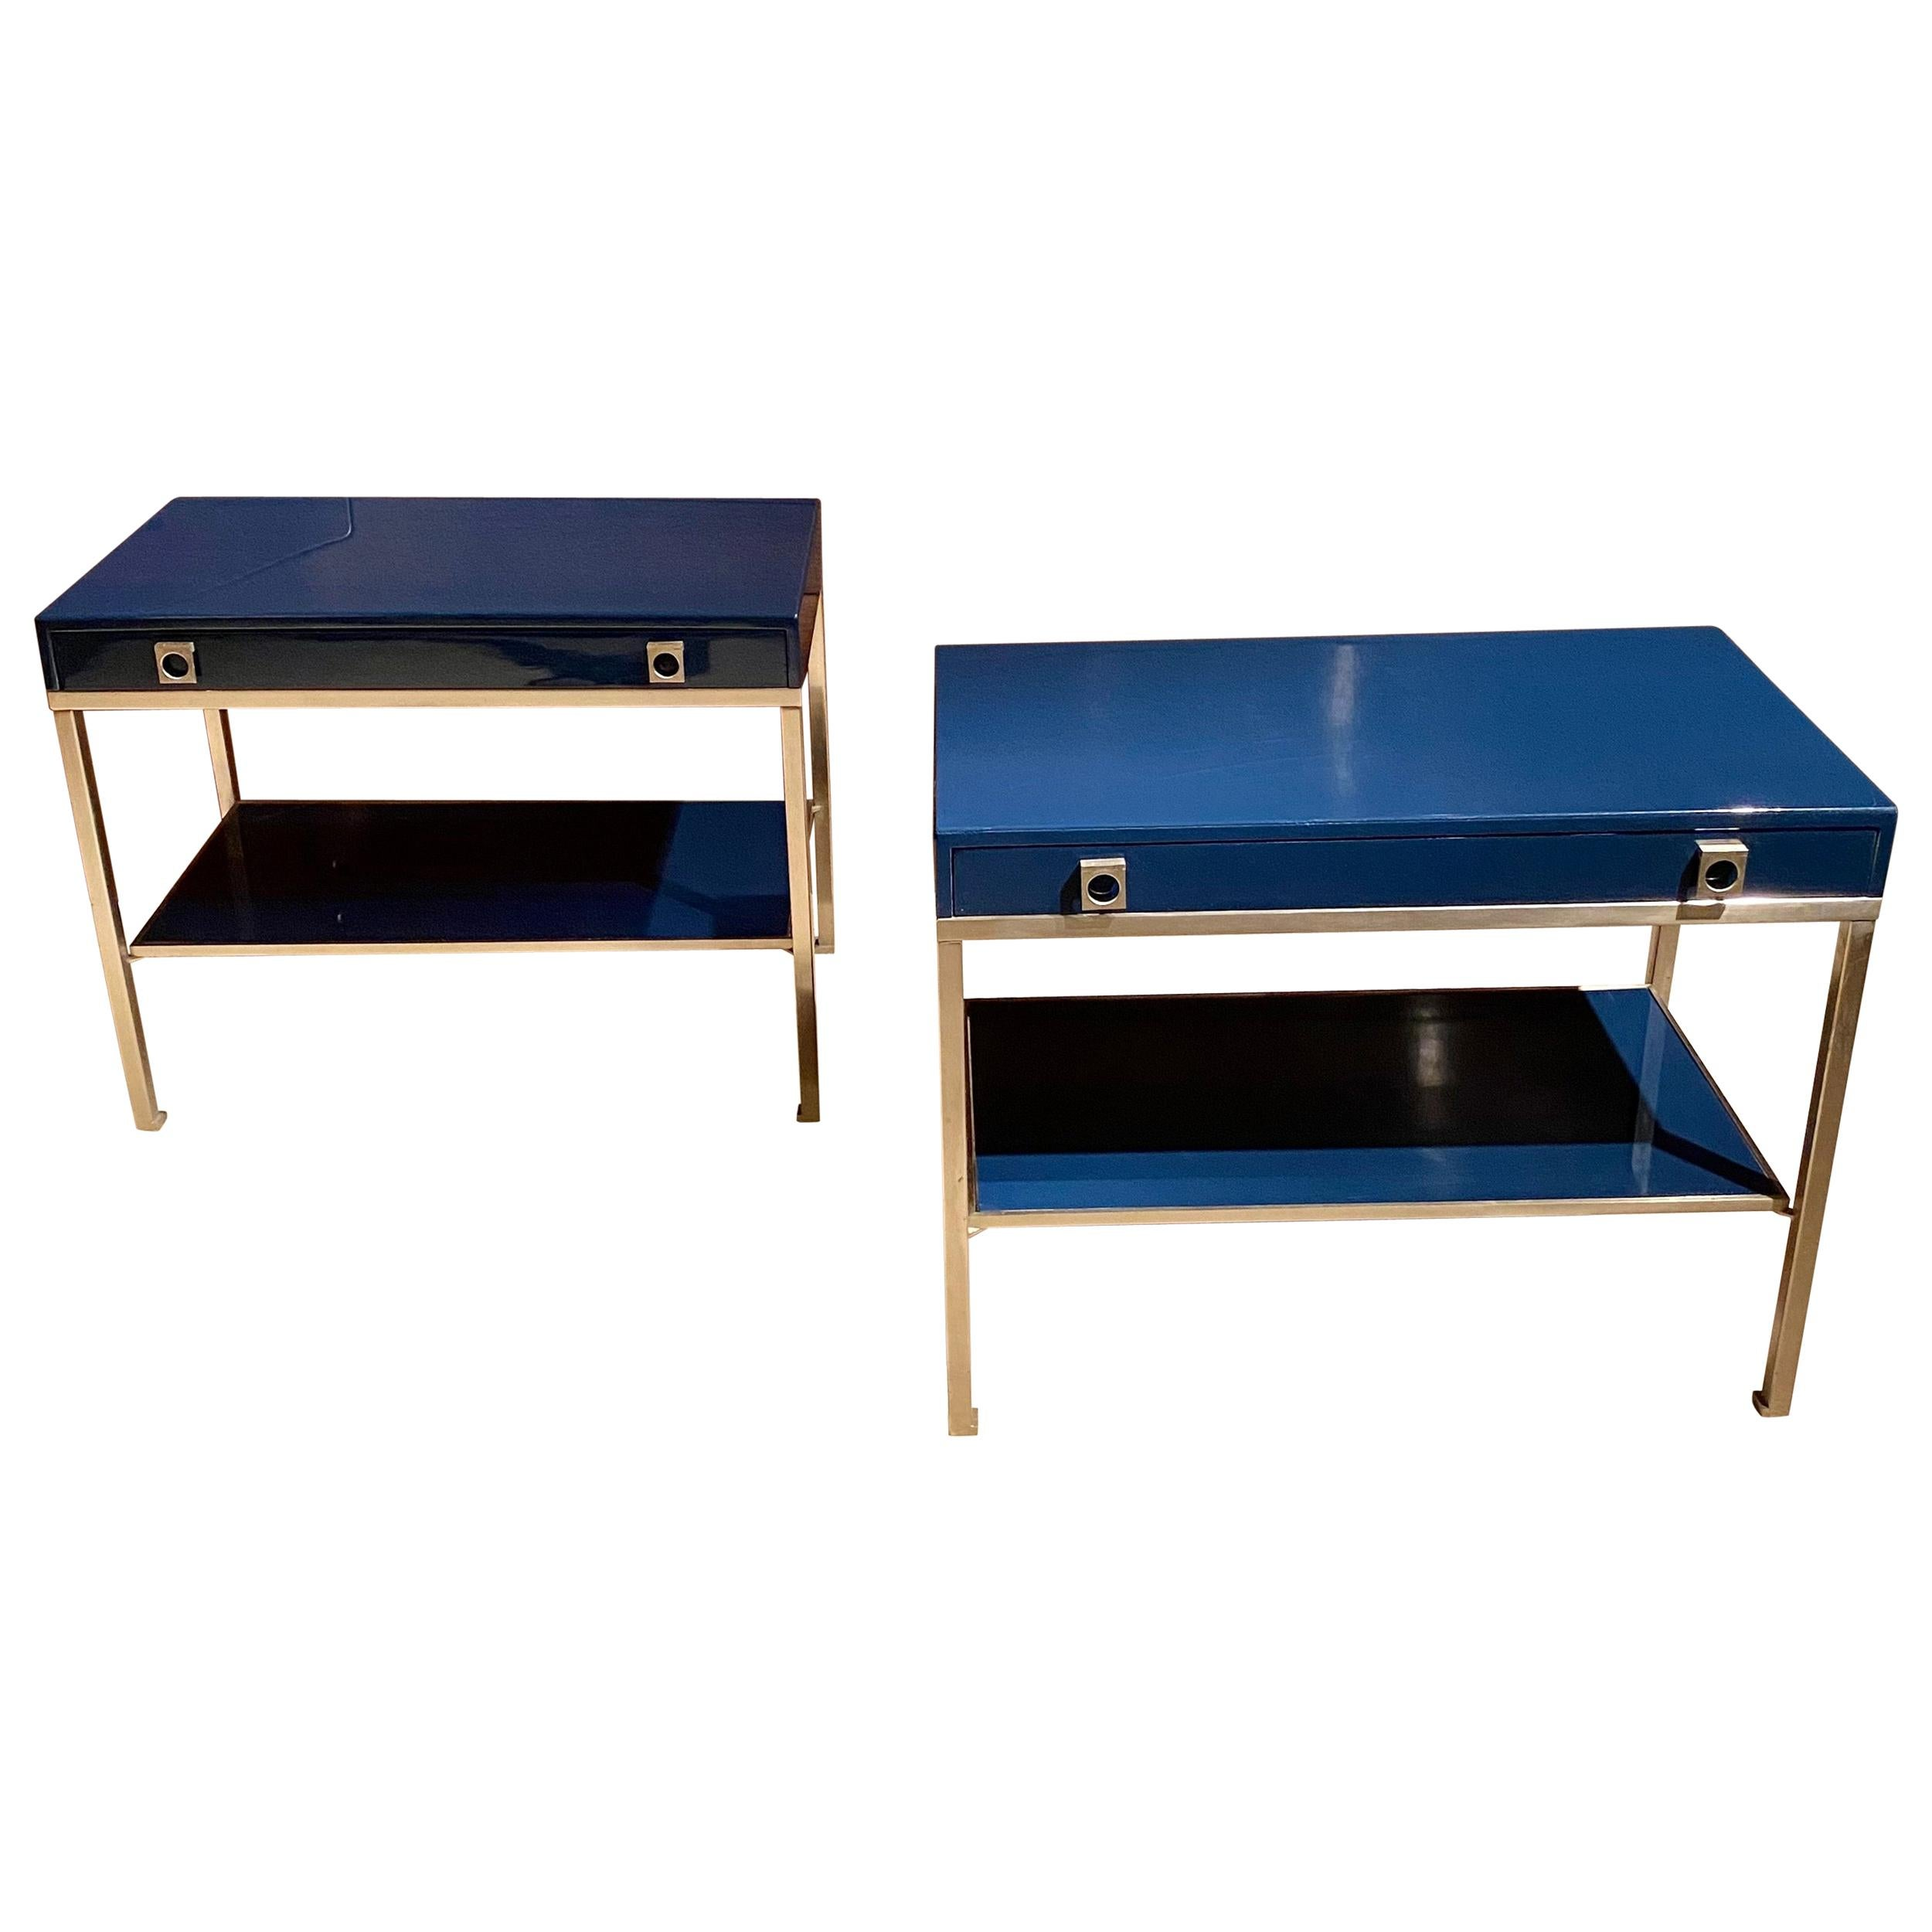 Pair of End Tables by Guy Lefevre for Maison Jansen, France, 1970's